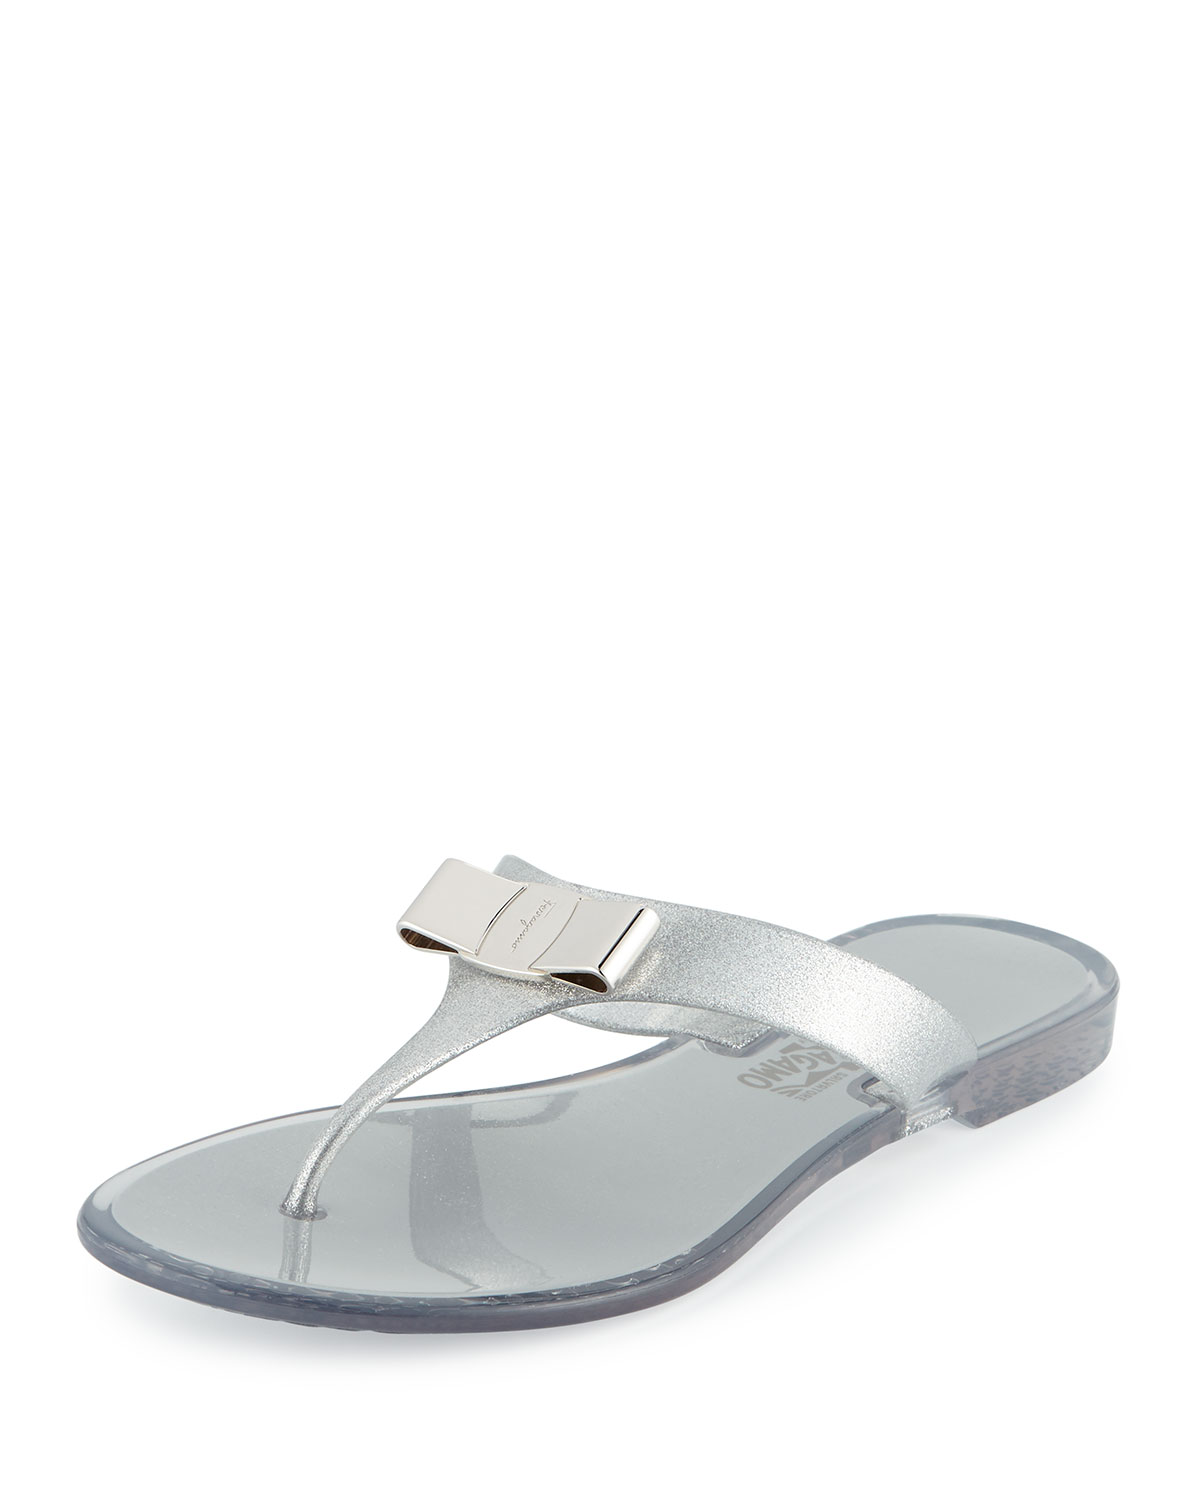 298de9211 Salvatore Ferragamo Bow Flat Jelly Thong Sandals